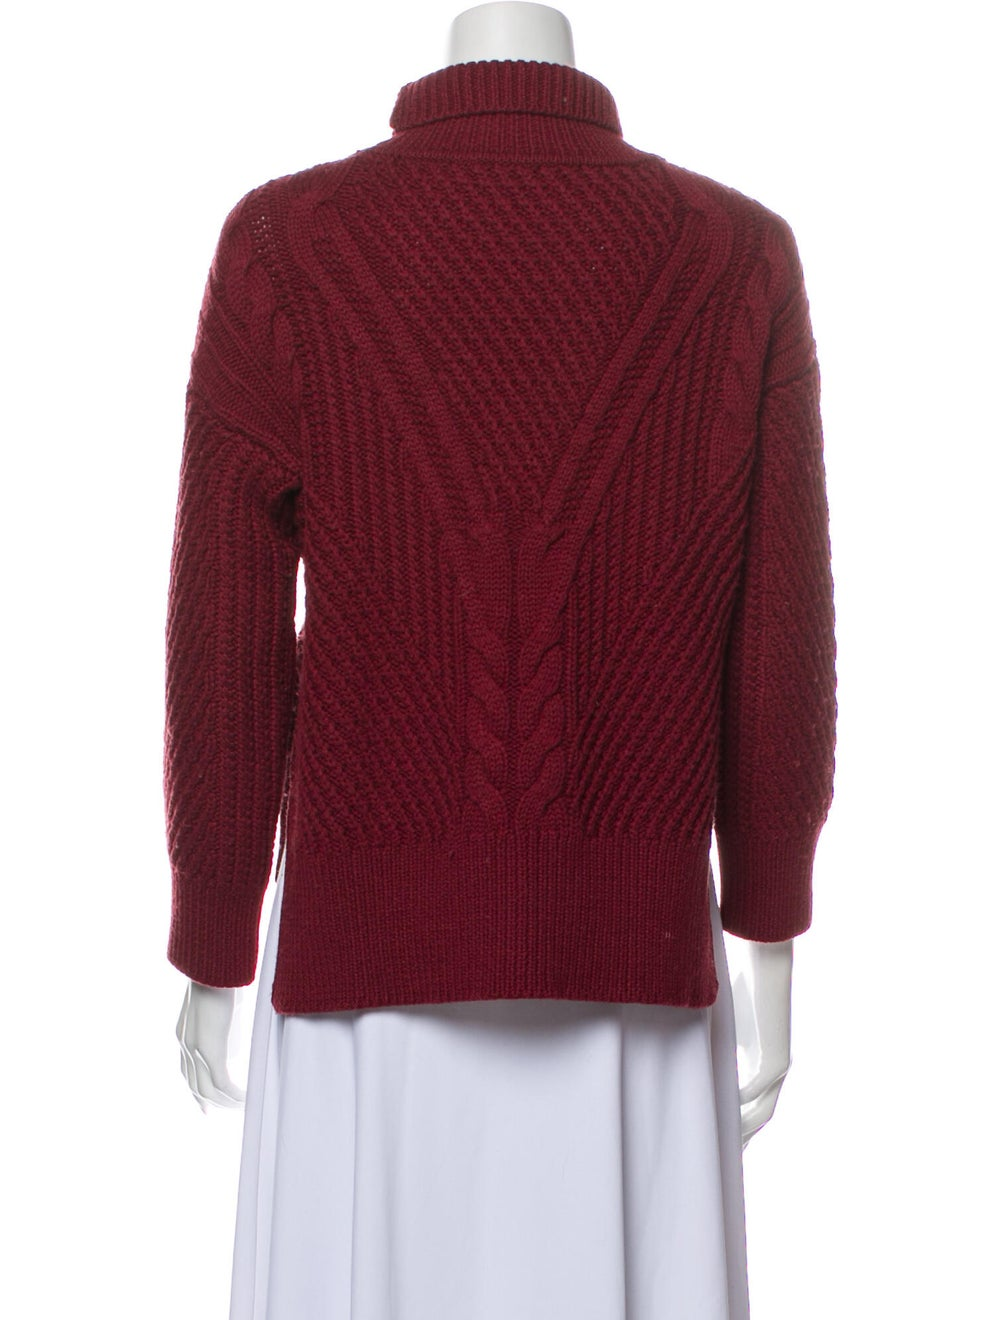 Duffy Wool Turtleneck Sweater Wool - image 3